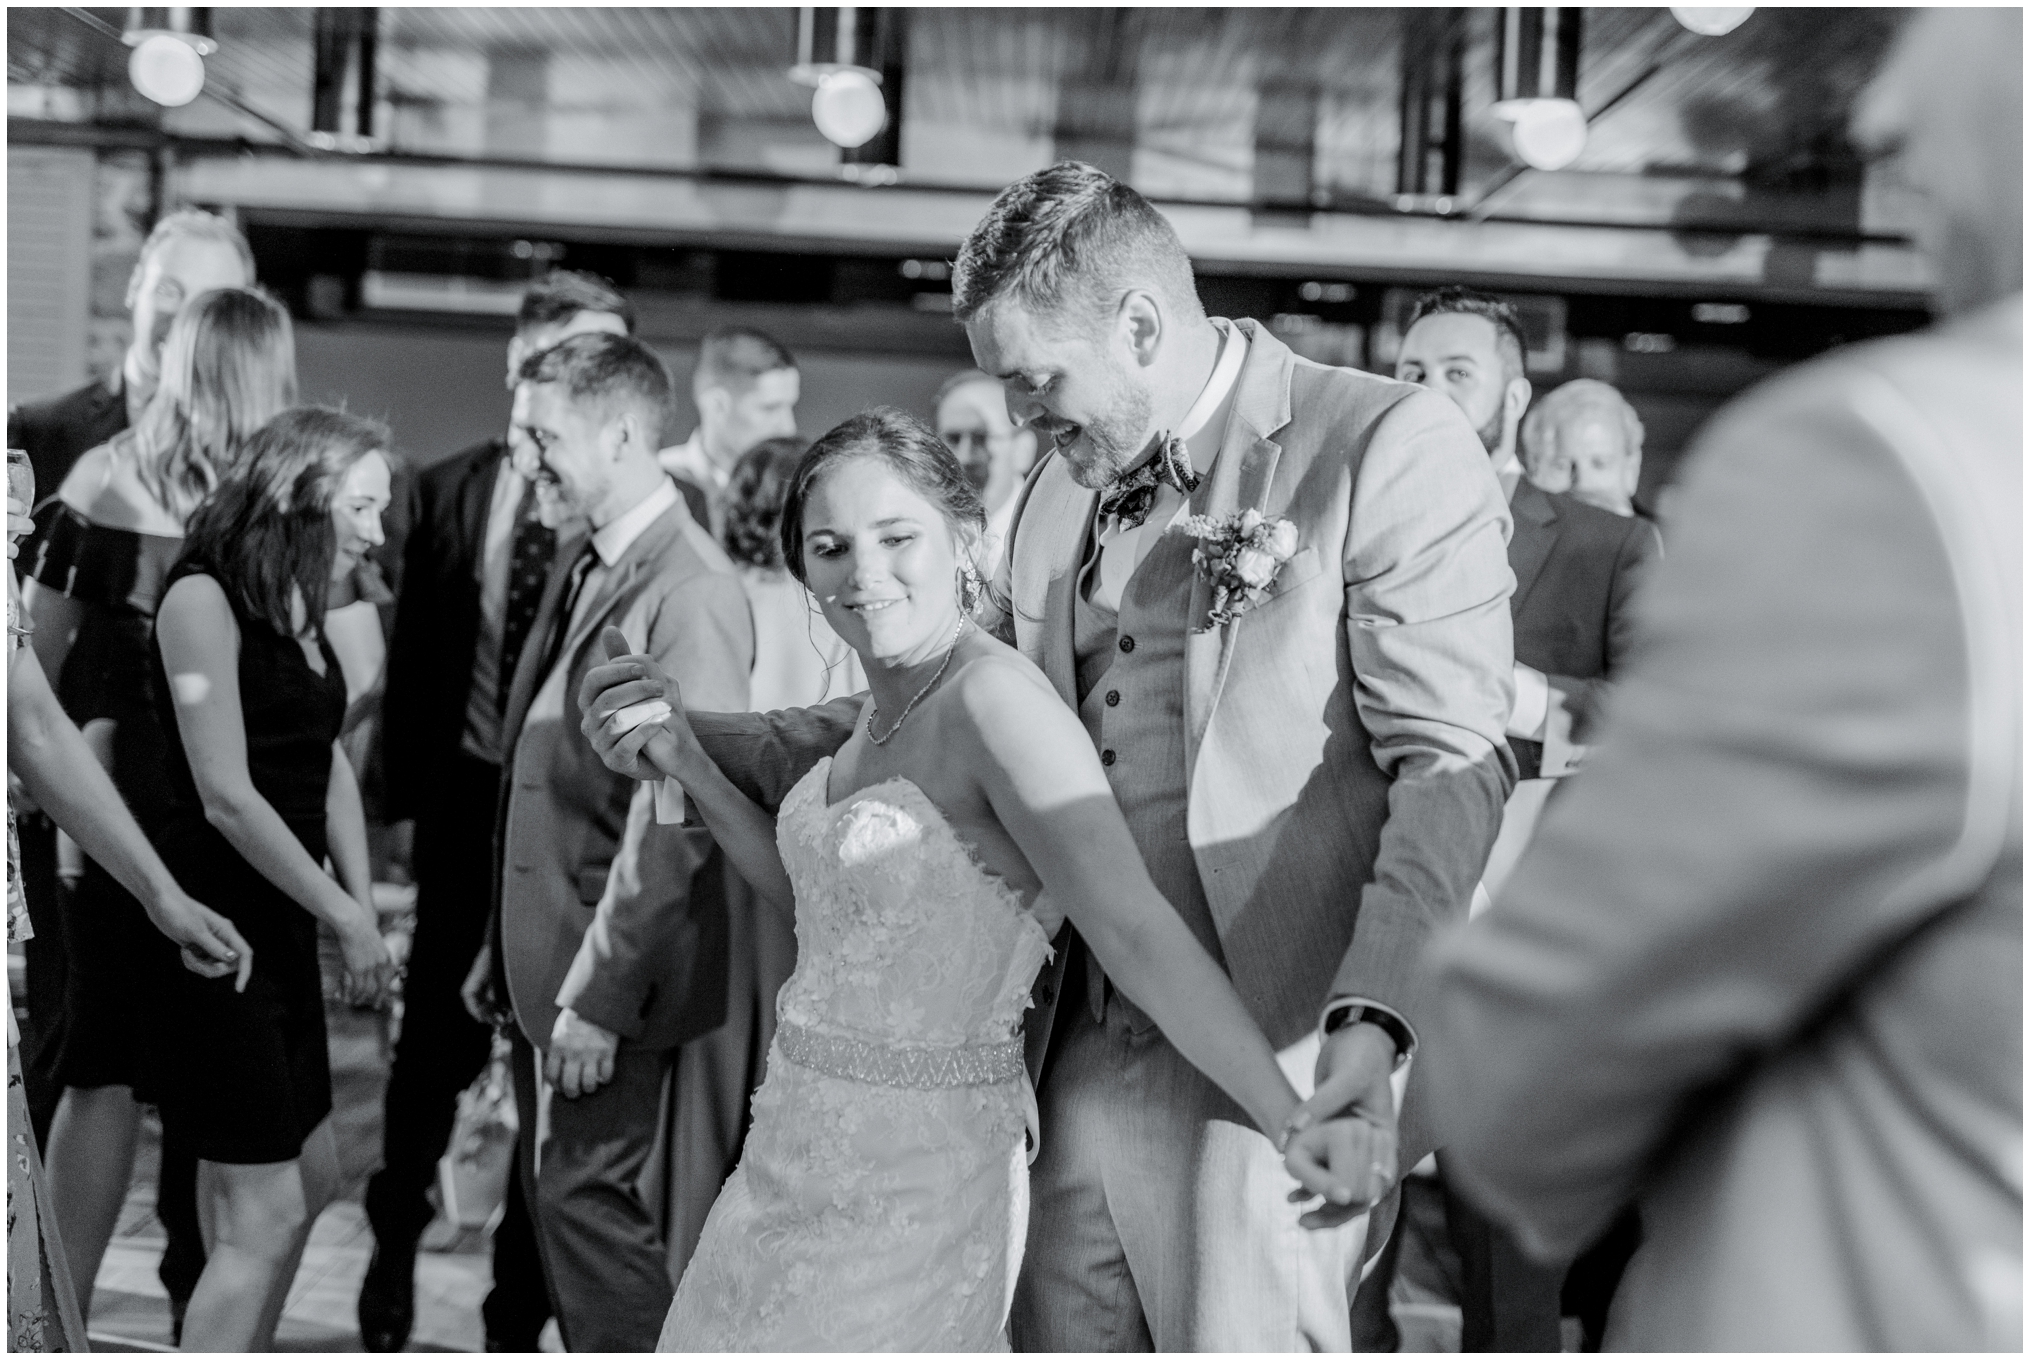 Krista Brackin Photography | April Wedding at The Carriage House at Rockwood Park_0116.jpg